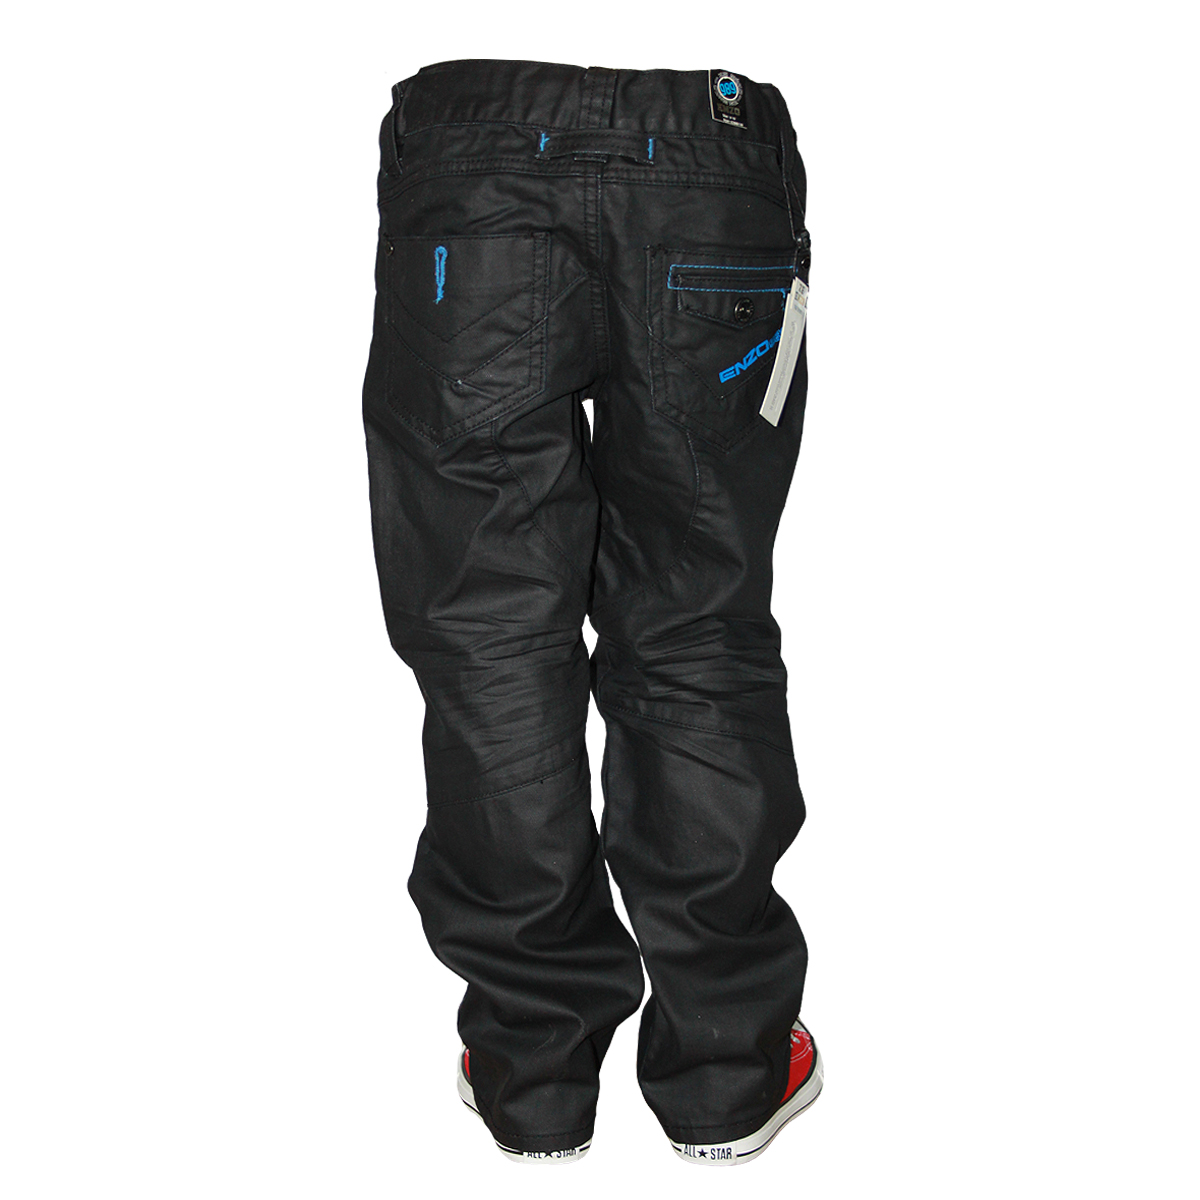 a091e25c3848 KIDS BOYS BLACK ZE ENZO EZB110 DESIGNER TAPERED FIT DENIM JEANS ALL ...